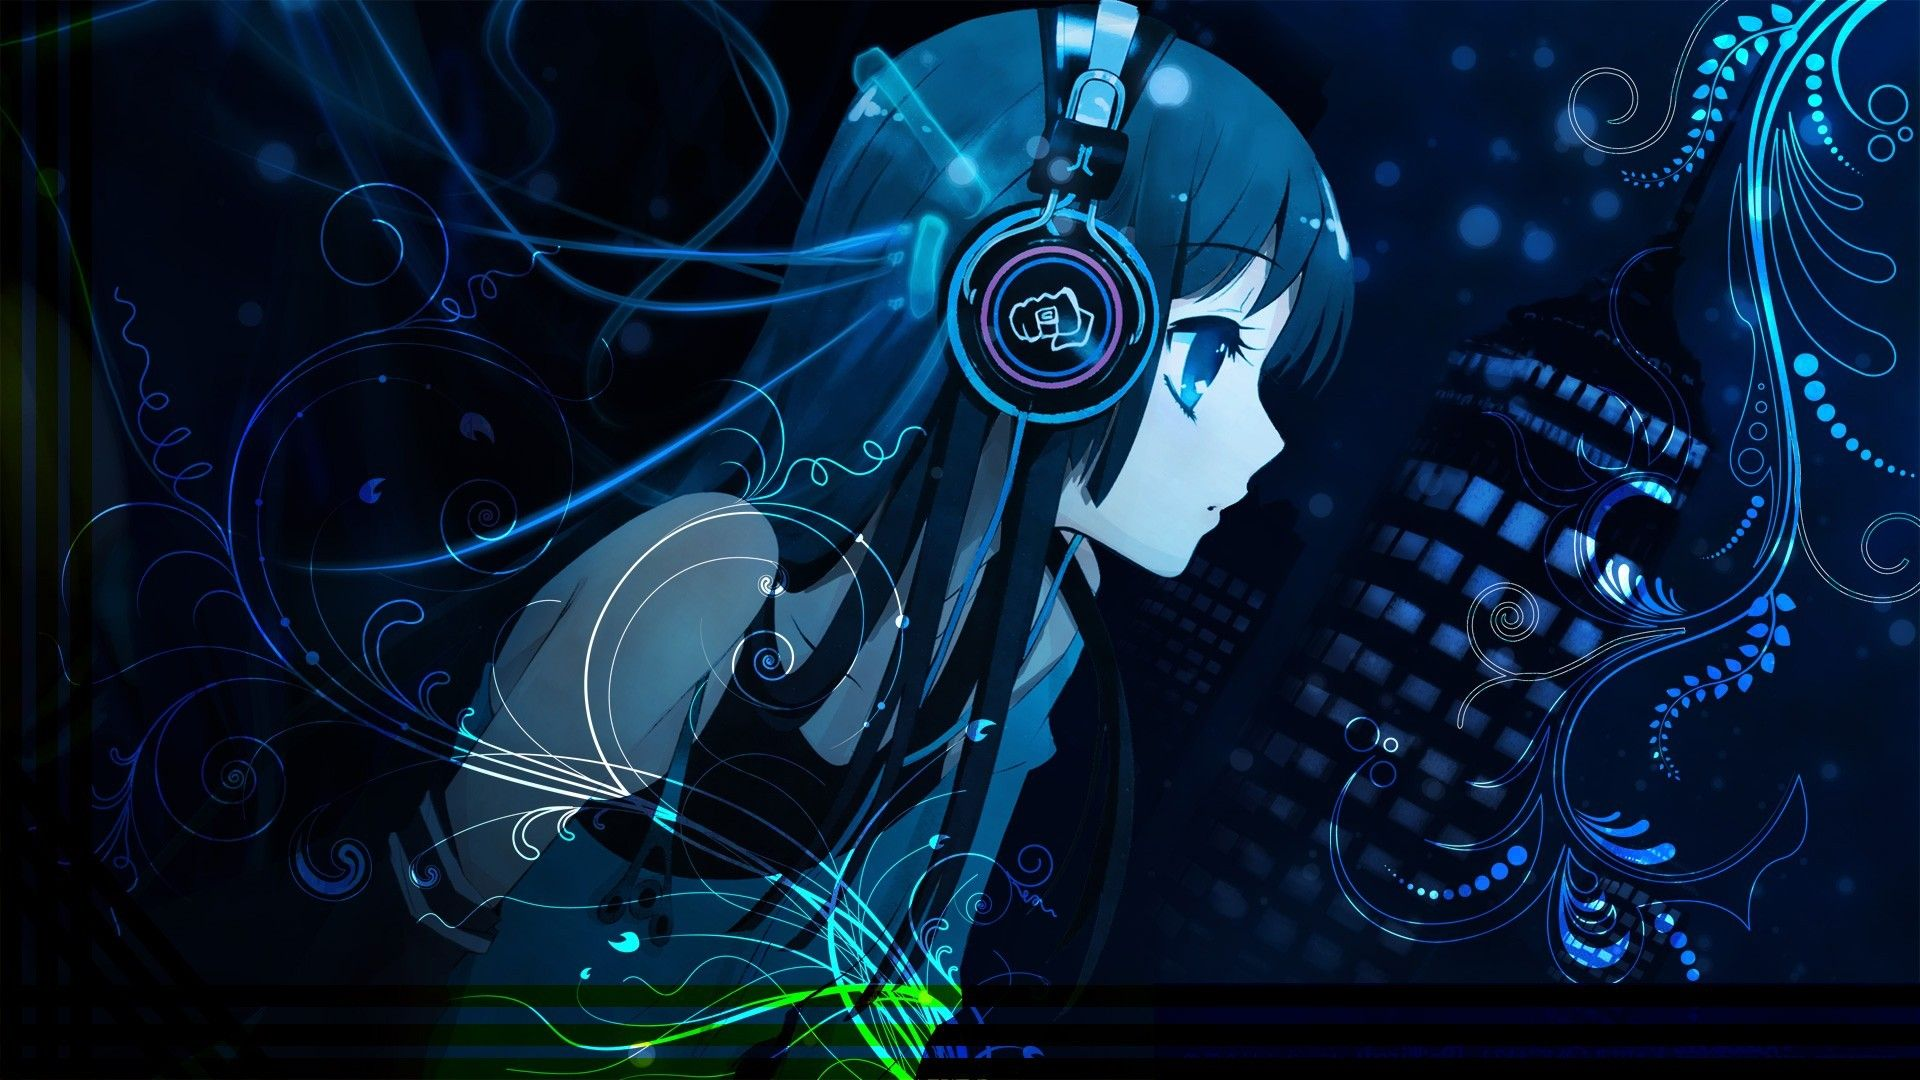 Anime Gaming Wallpapers Top Free Anime Gaming Backgrounds Wallpaperaccess